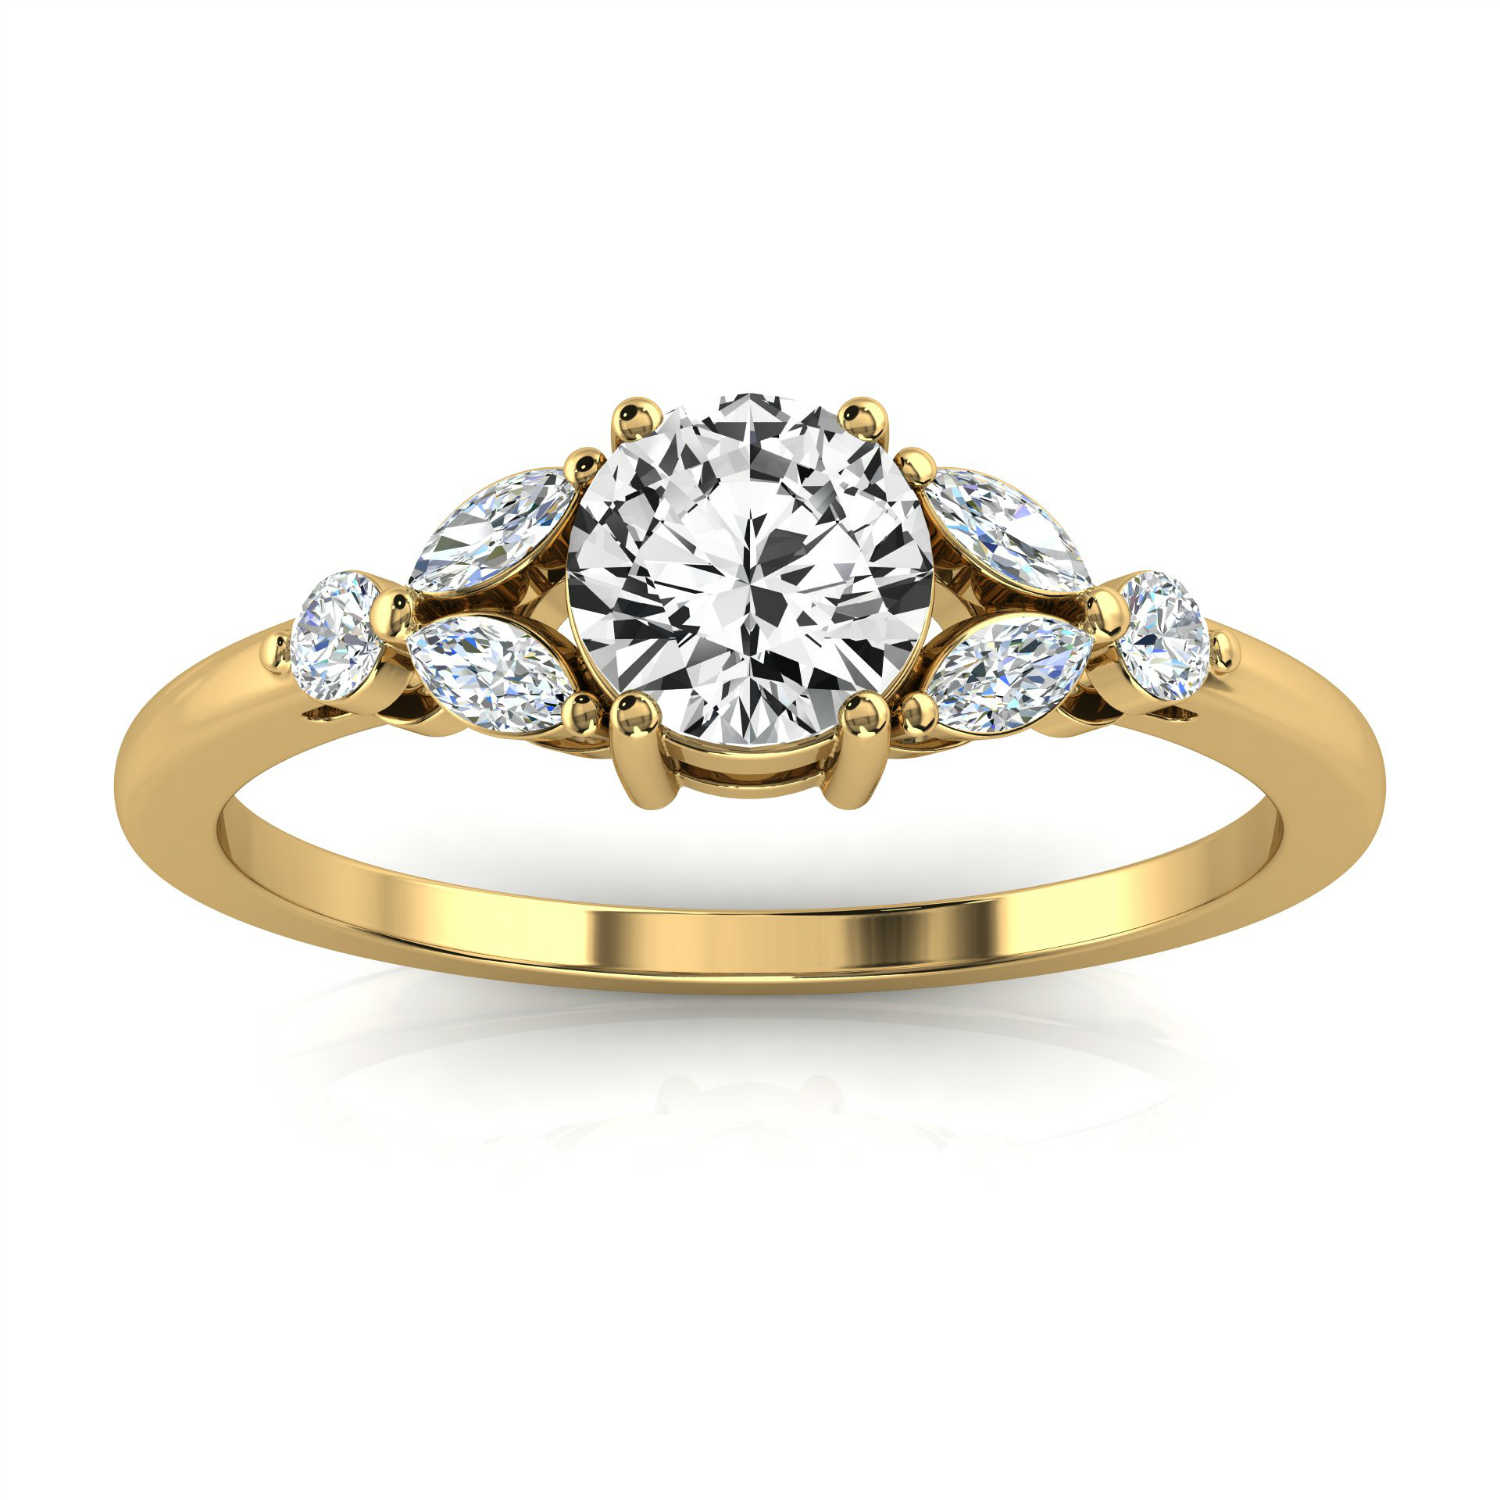 14K Yellow Gold Legna Petite Earthy Organic Design Round Diamond Ring (Center - 1/2 Carat)